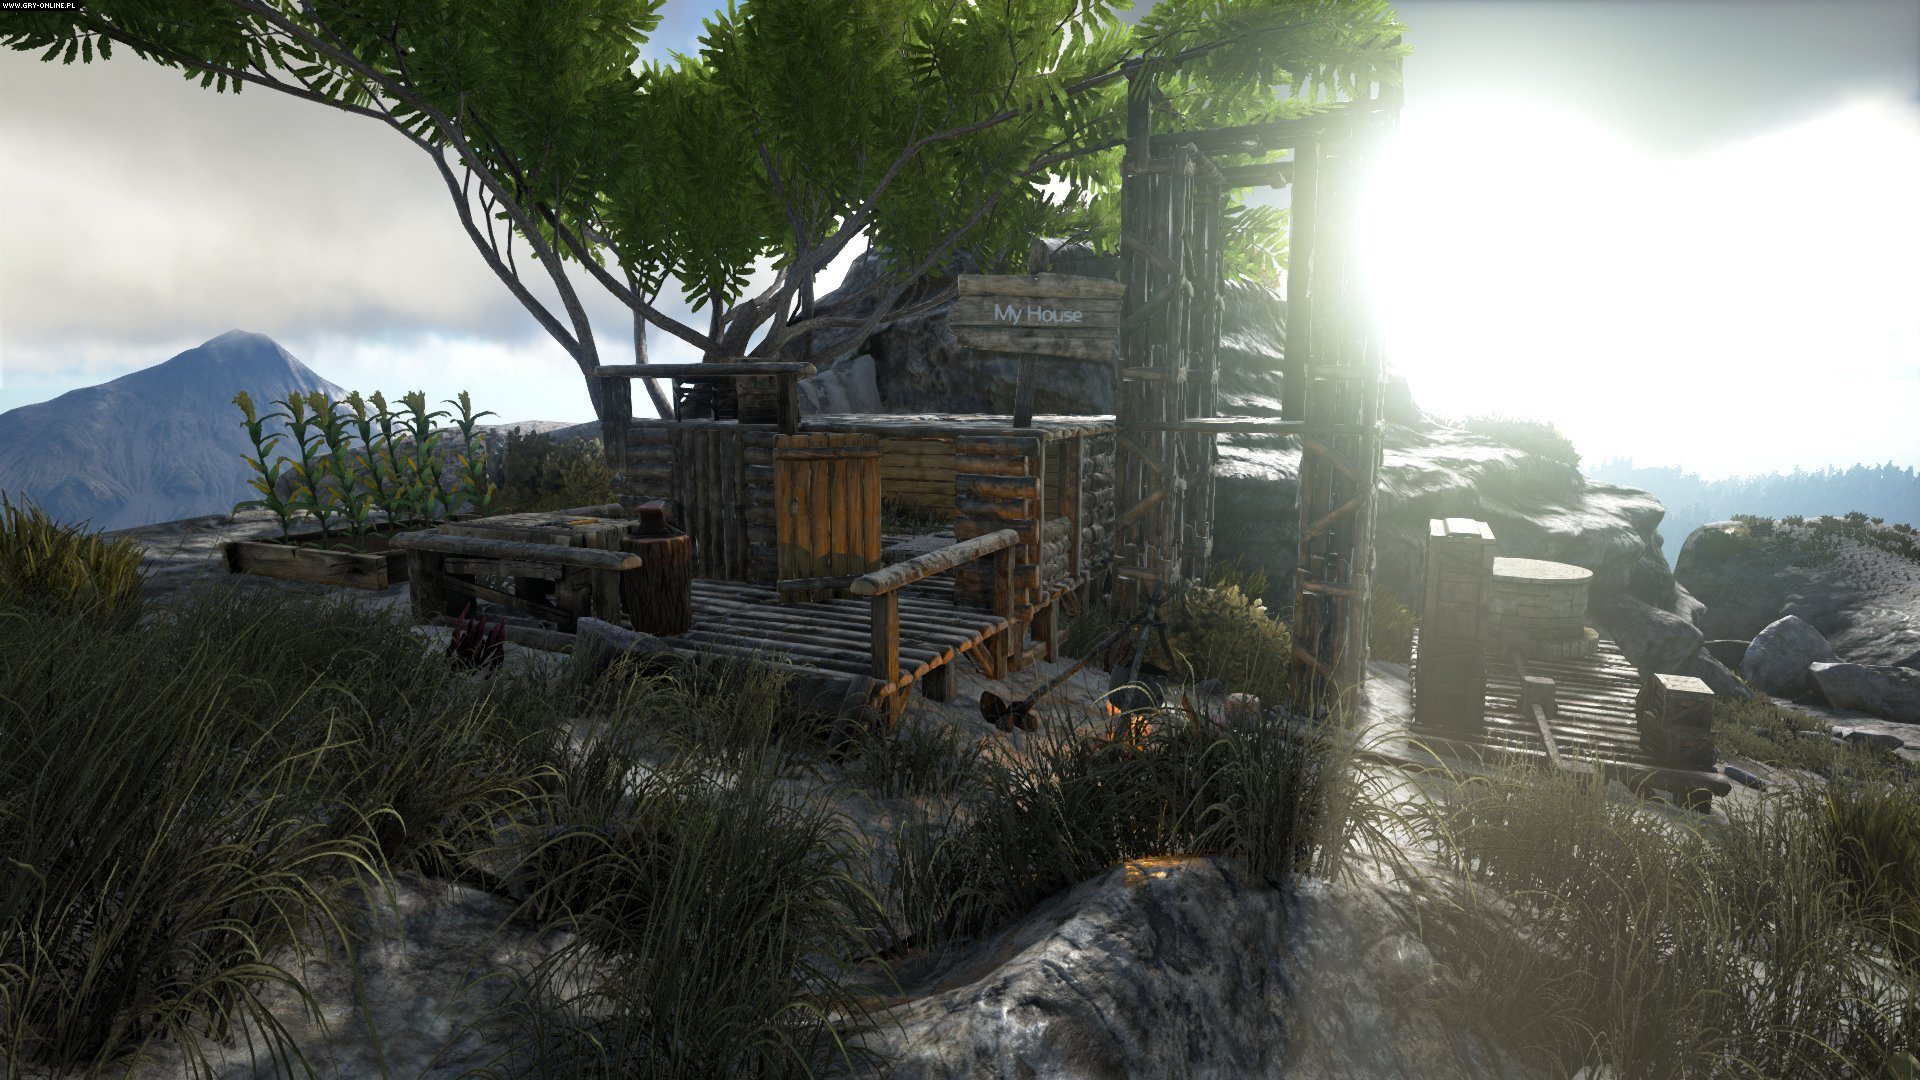 ARK: Survival Evolved PC, PS4, XONE Gry Screen 126/139, Studio Wildcard